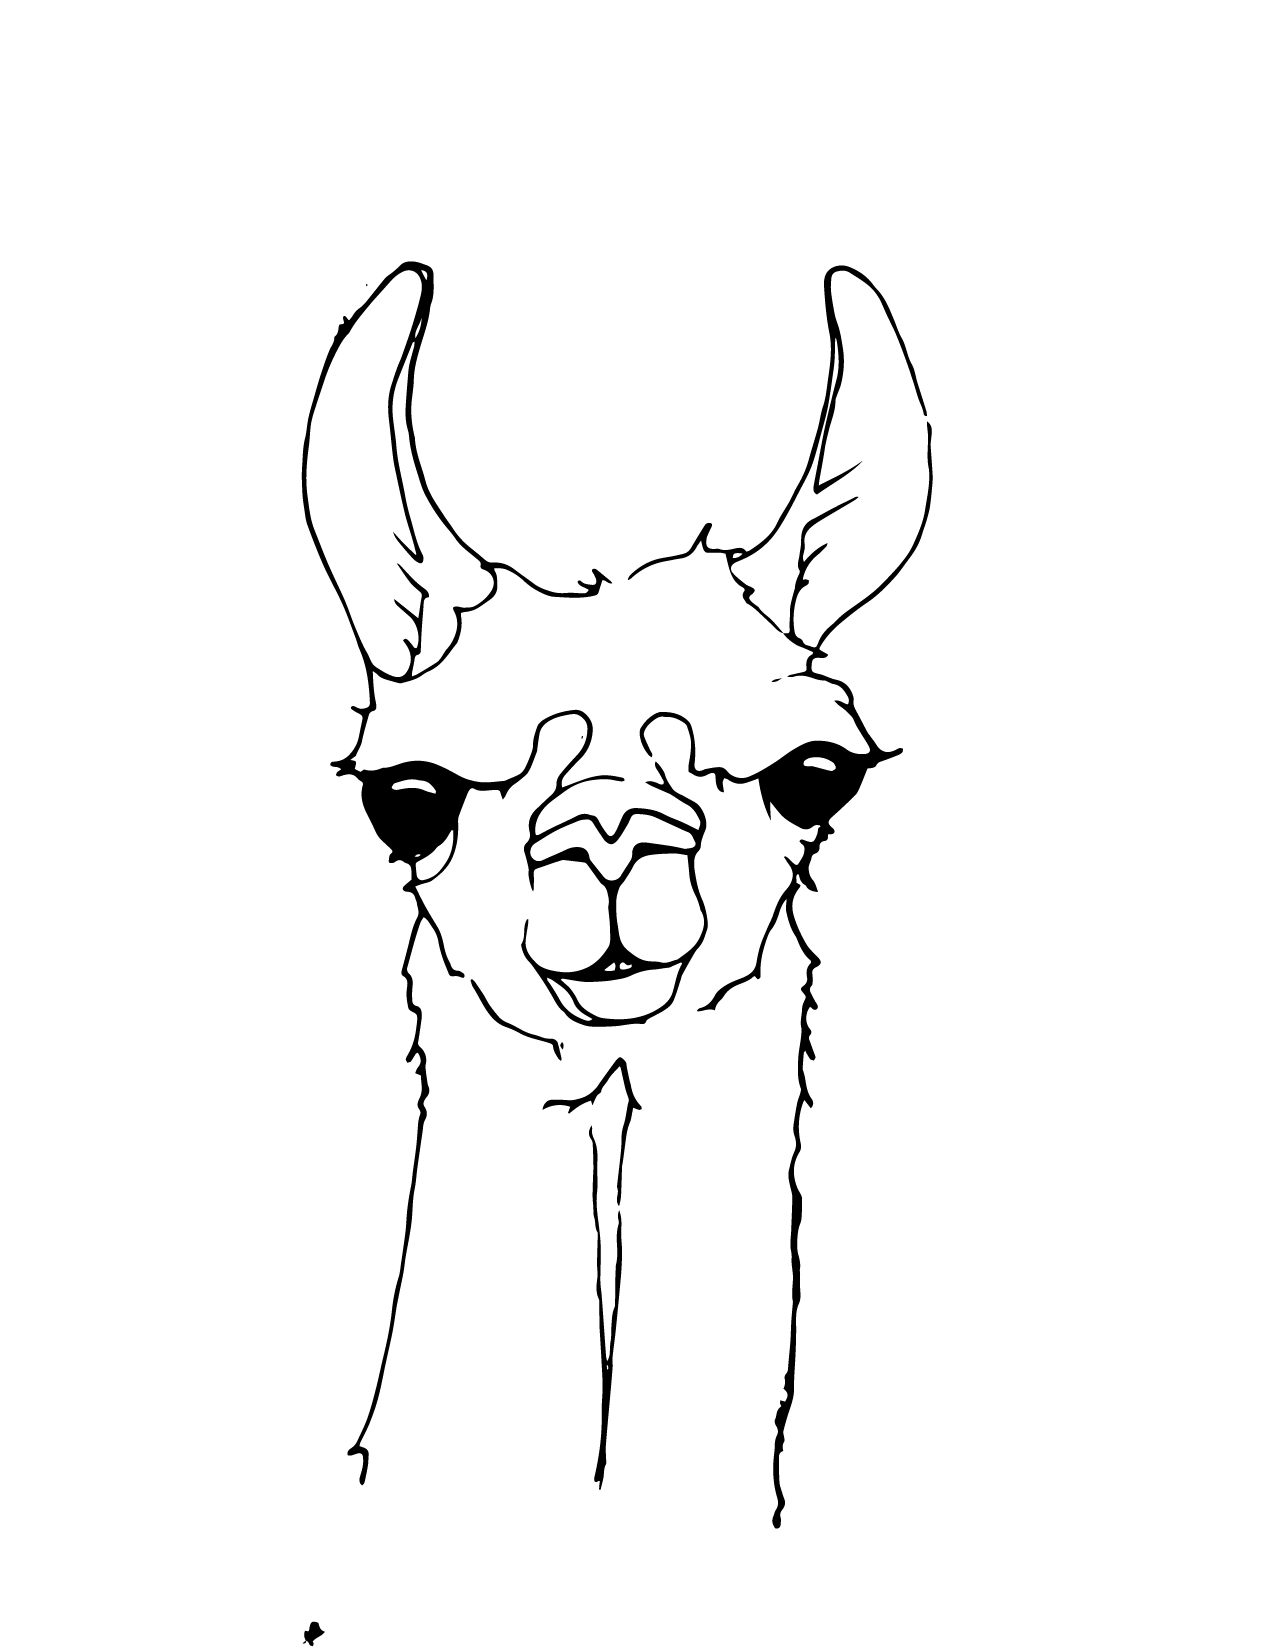 coloring pages llamas - photo#25